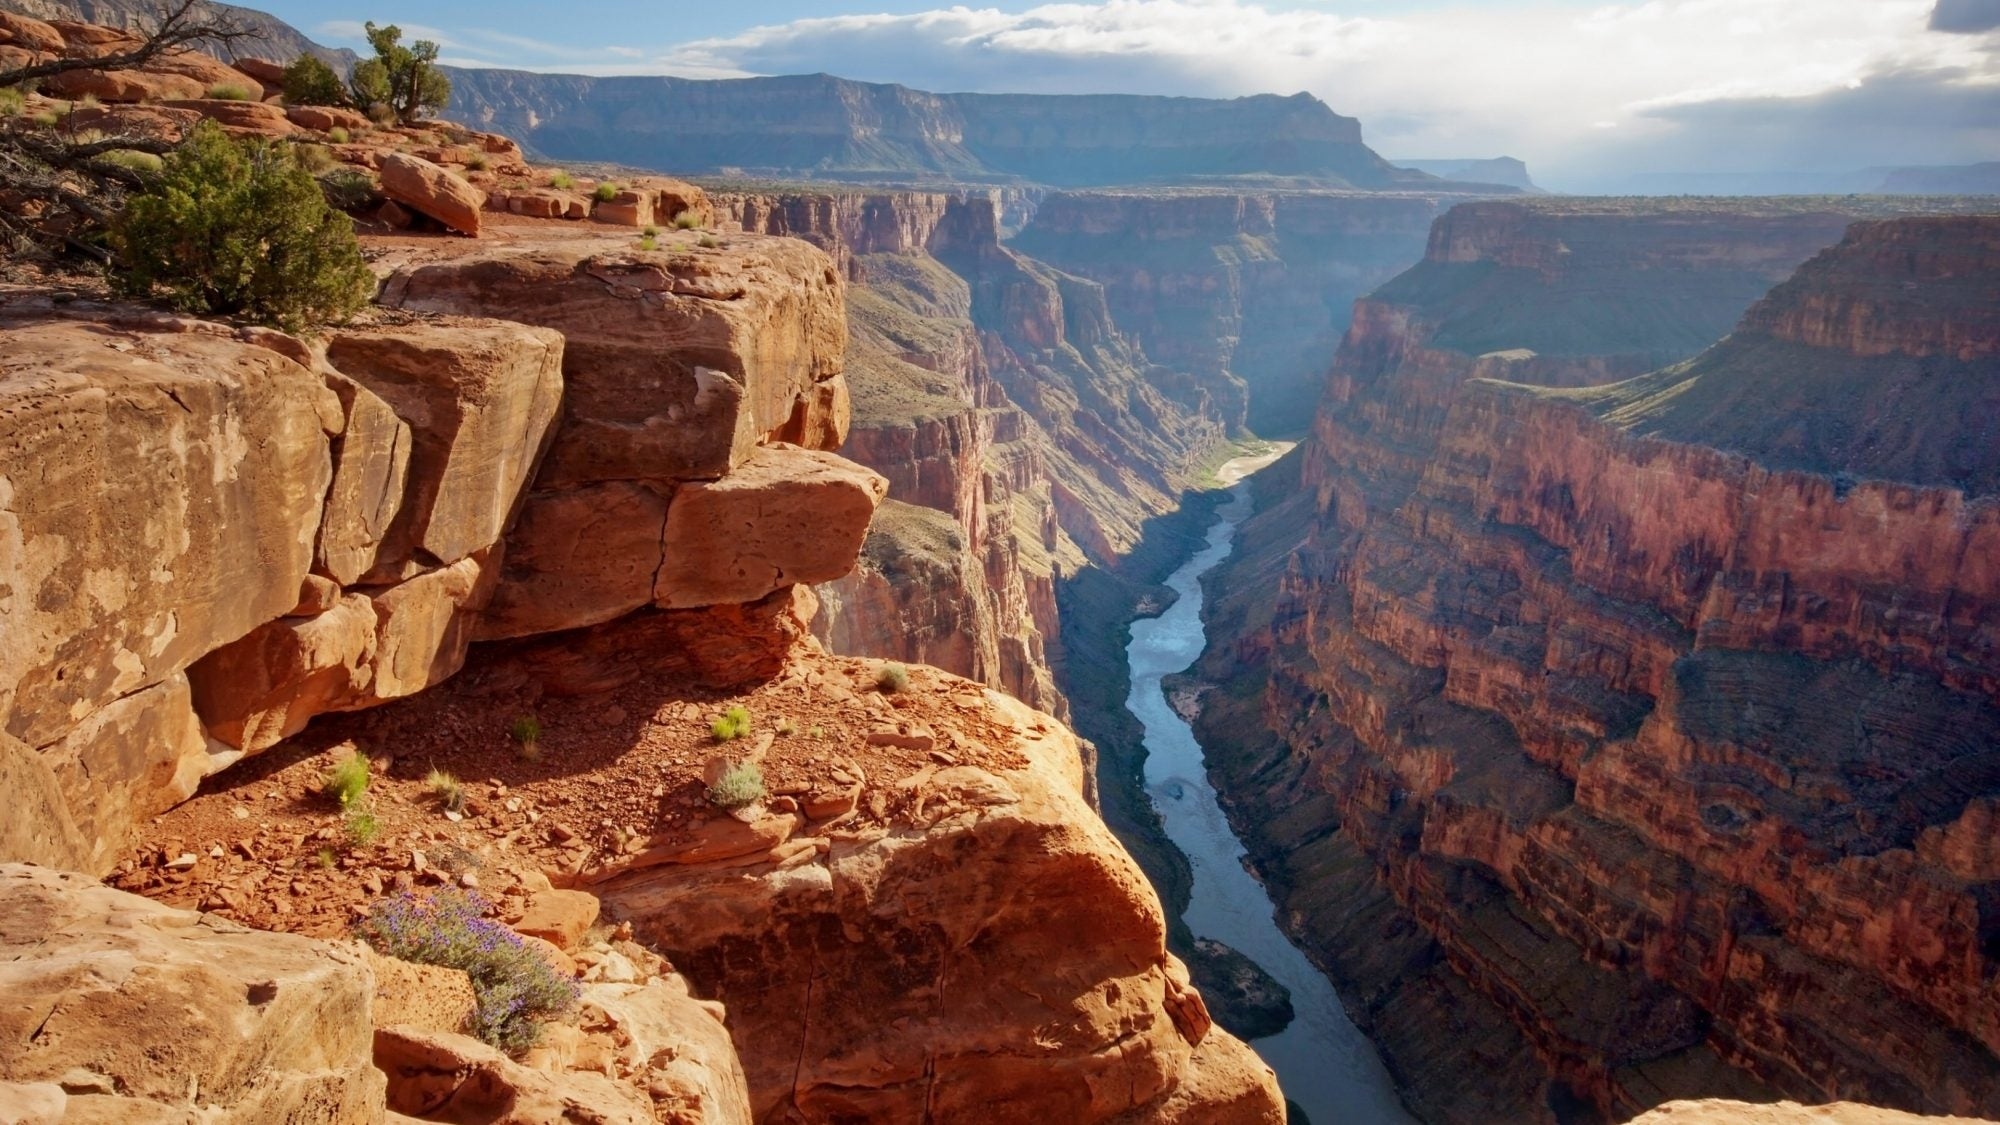 Image of beautiful Grand Canyon views